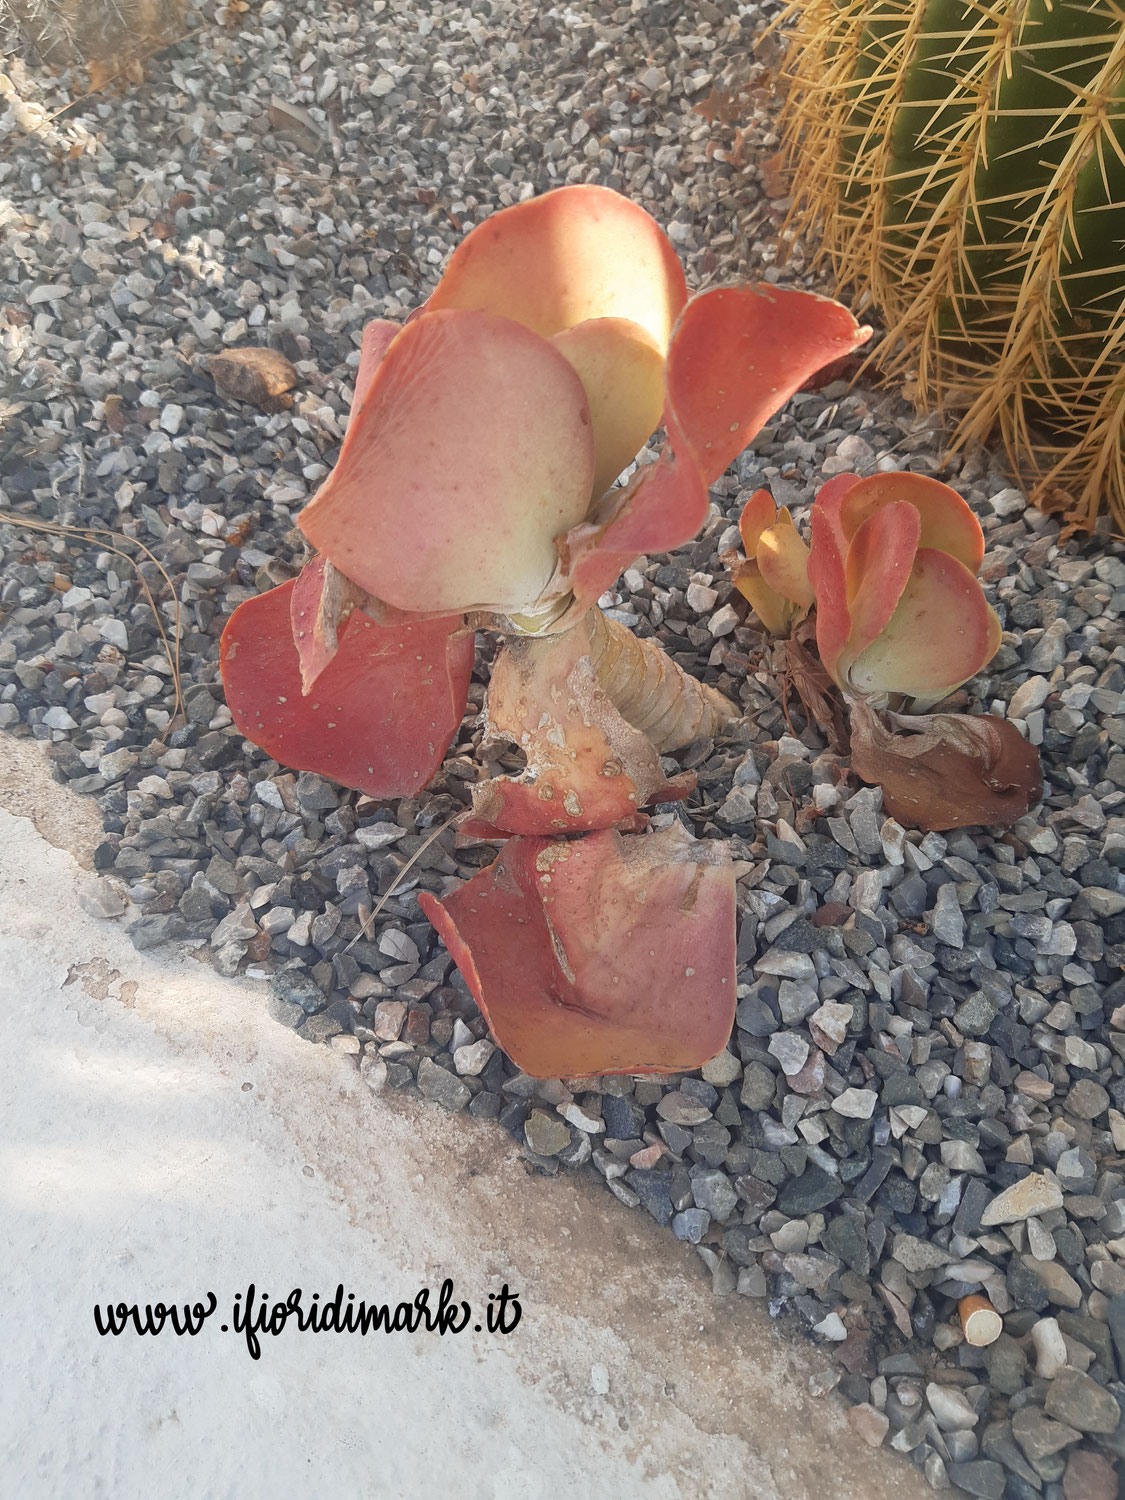 Kalanchoe tetraphylla: the plant of good wishes and a new beginning